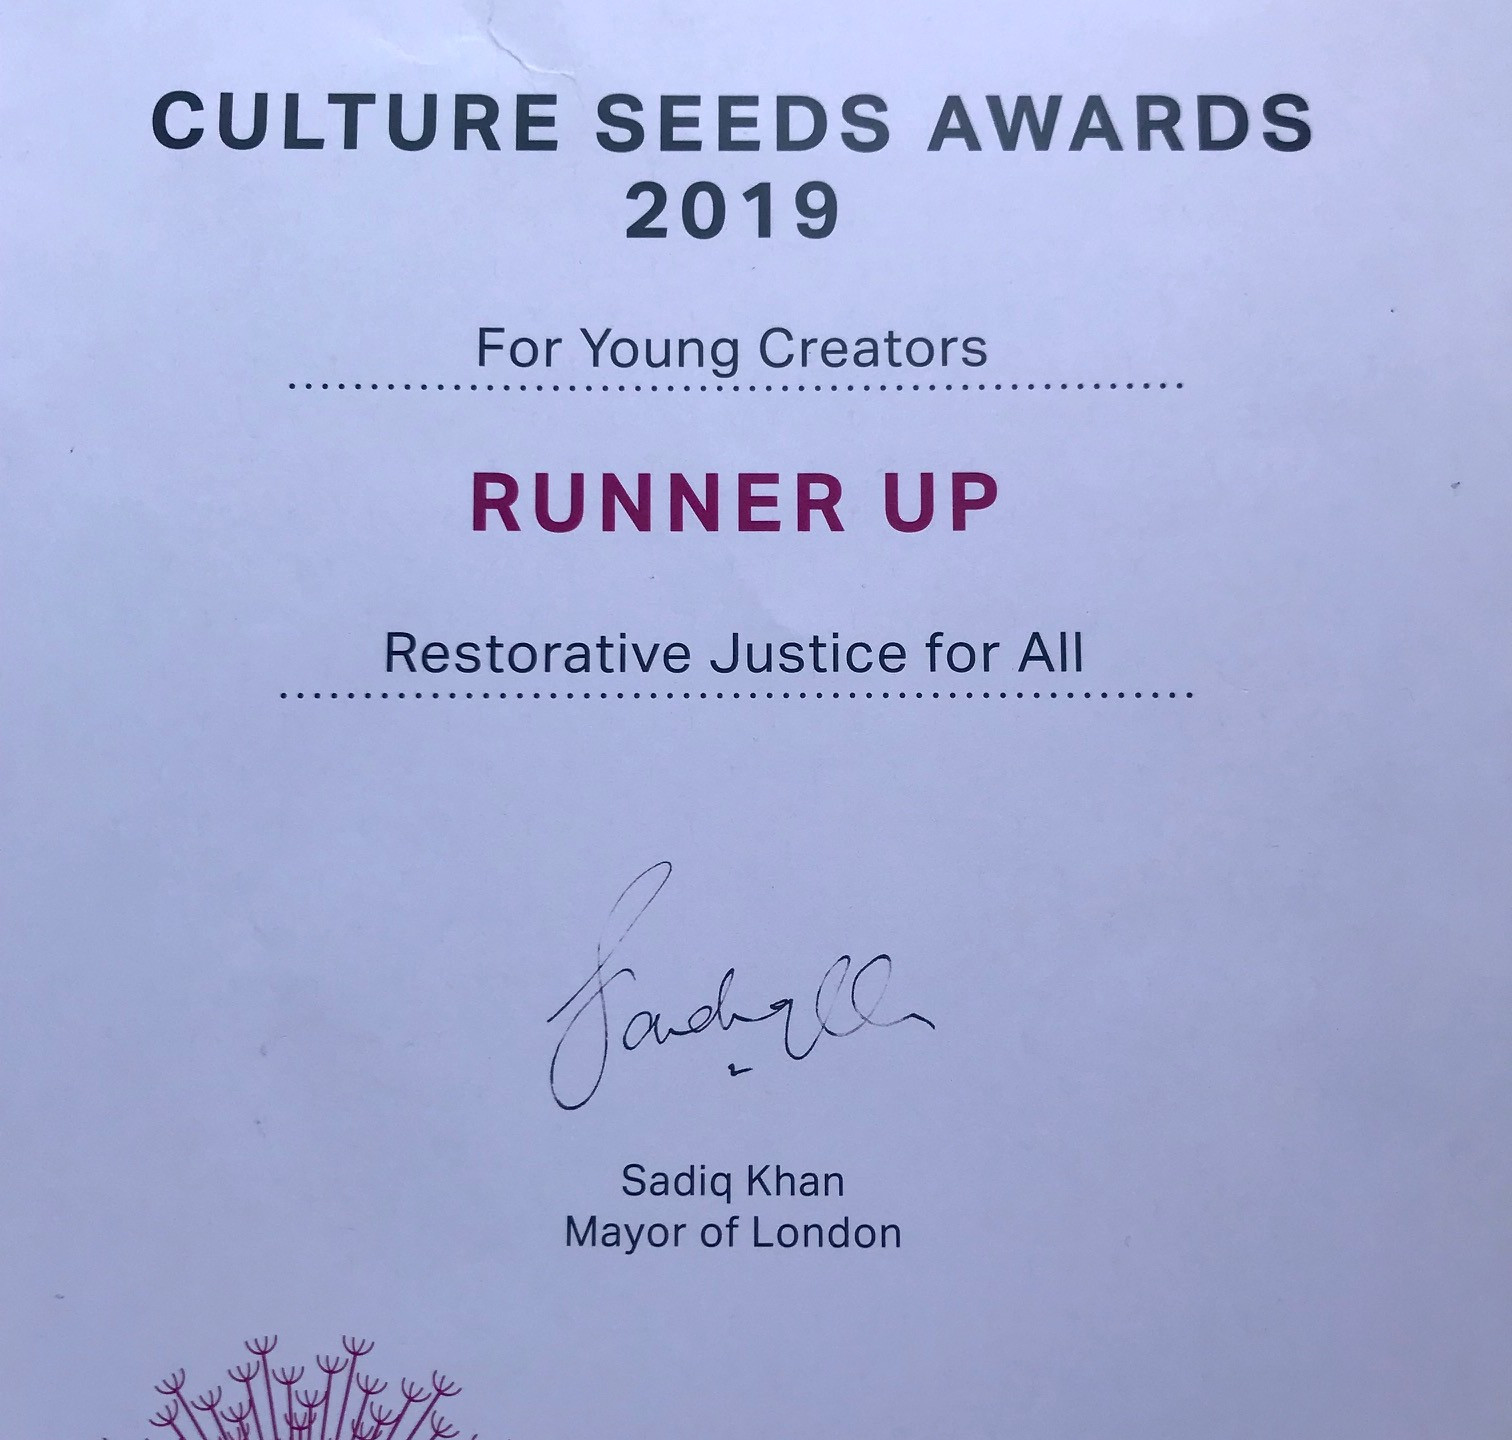 culture seeds RJ4All runner up